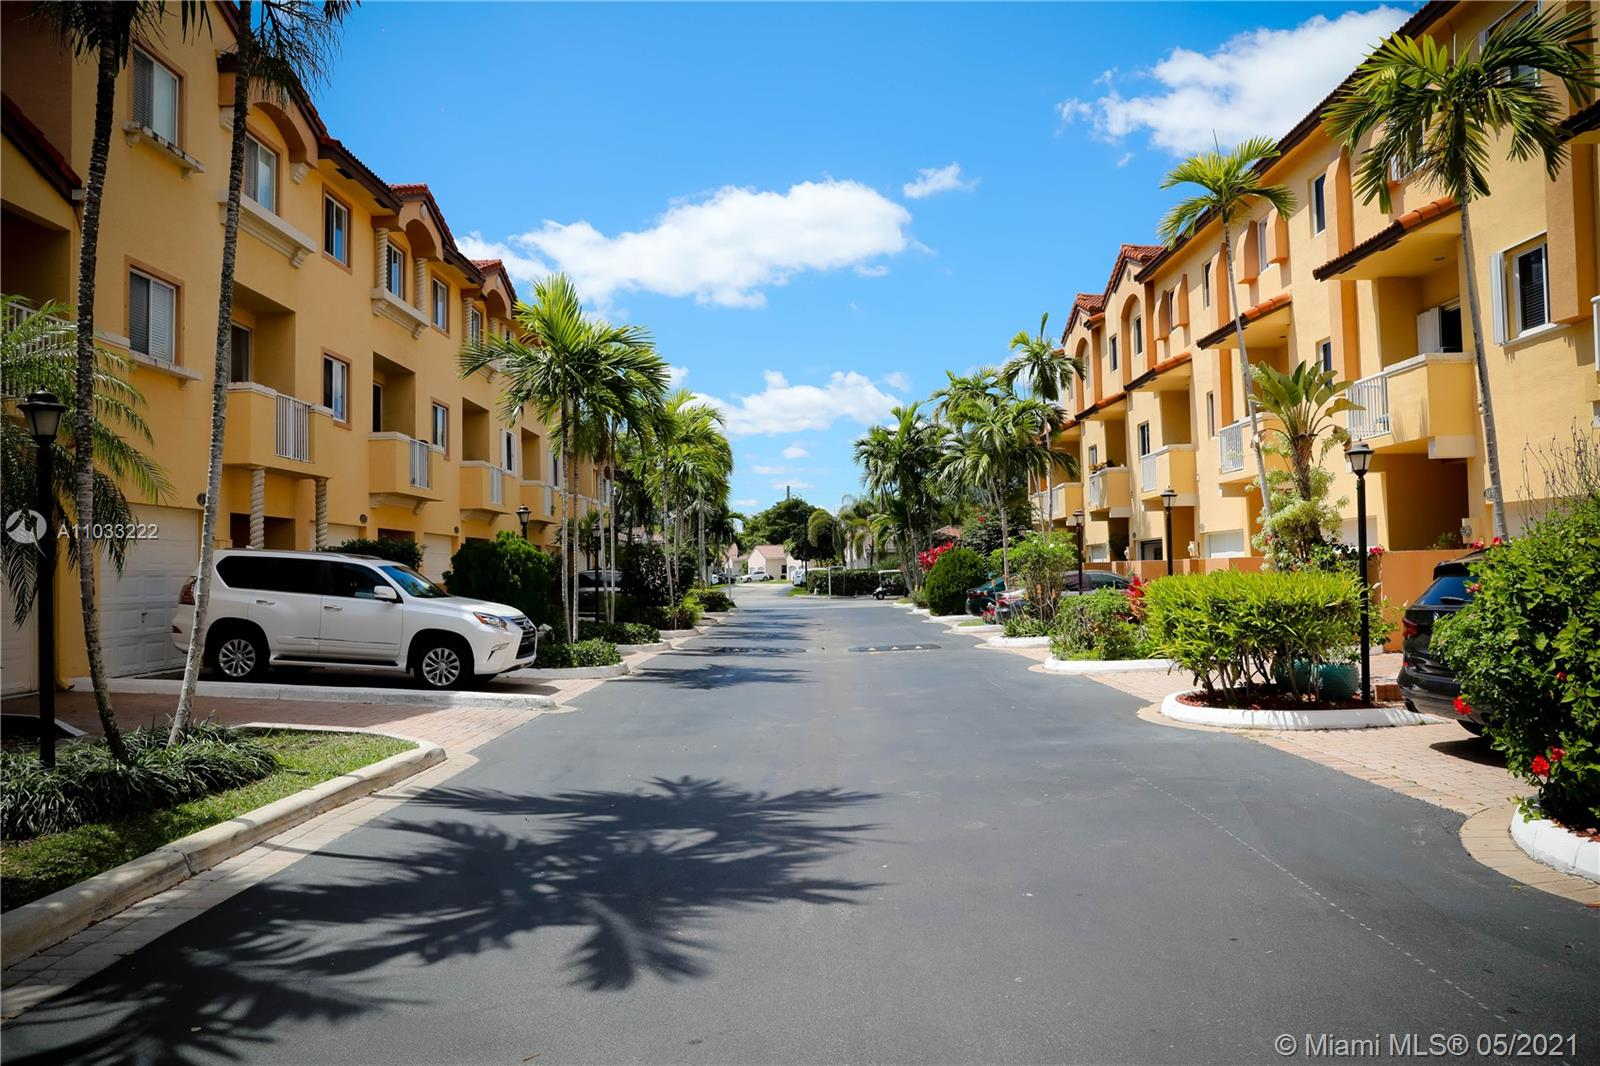 """Unique Investment Opportunity in the Gated Community """"Harbour Village"""" This corner townhouse is composed of 2,150 SQ FT AC and includes 4 spacious bedrooms and 3.5 baths. The gated community of Harbour Village has 24 hour security, community pool, access to the waterways gated marina and shops.  Walking distance to Don Soffer charter school, Waterways park and dog park, whole foods, target, Best Buy, and House of Worship. Family Friendly location in the Heart of Aventura."""